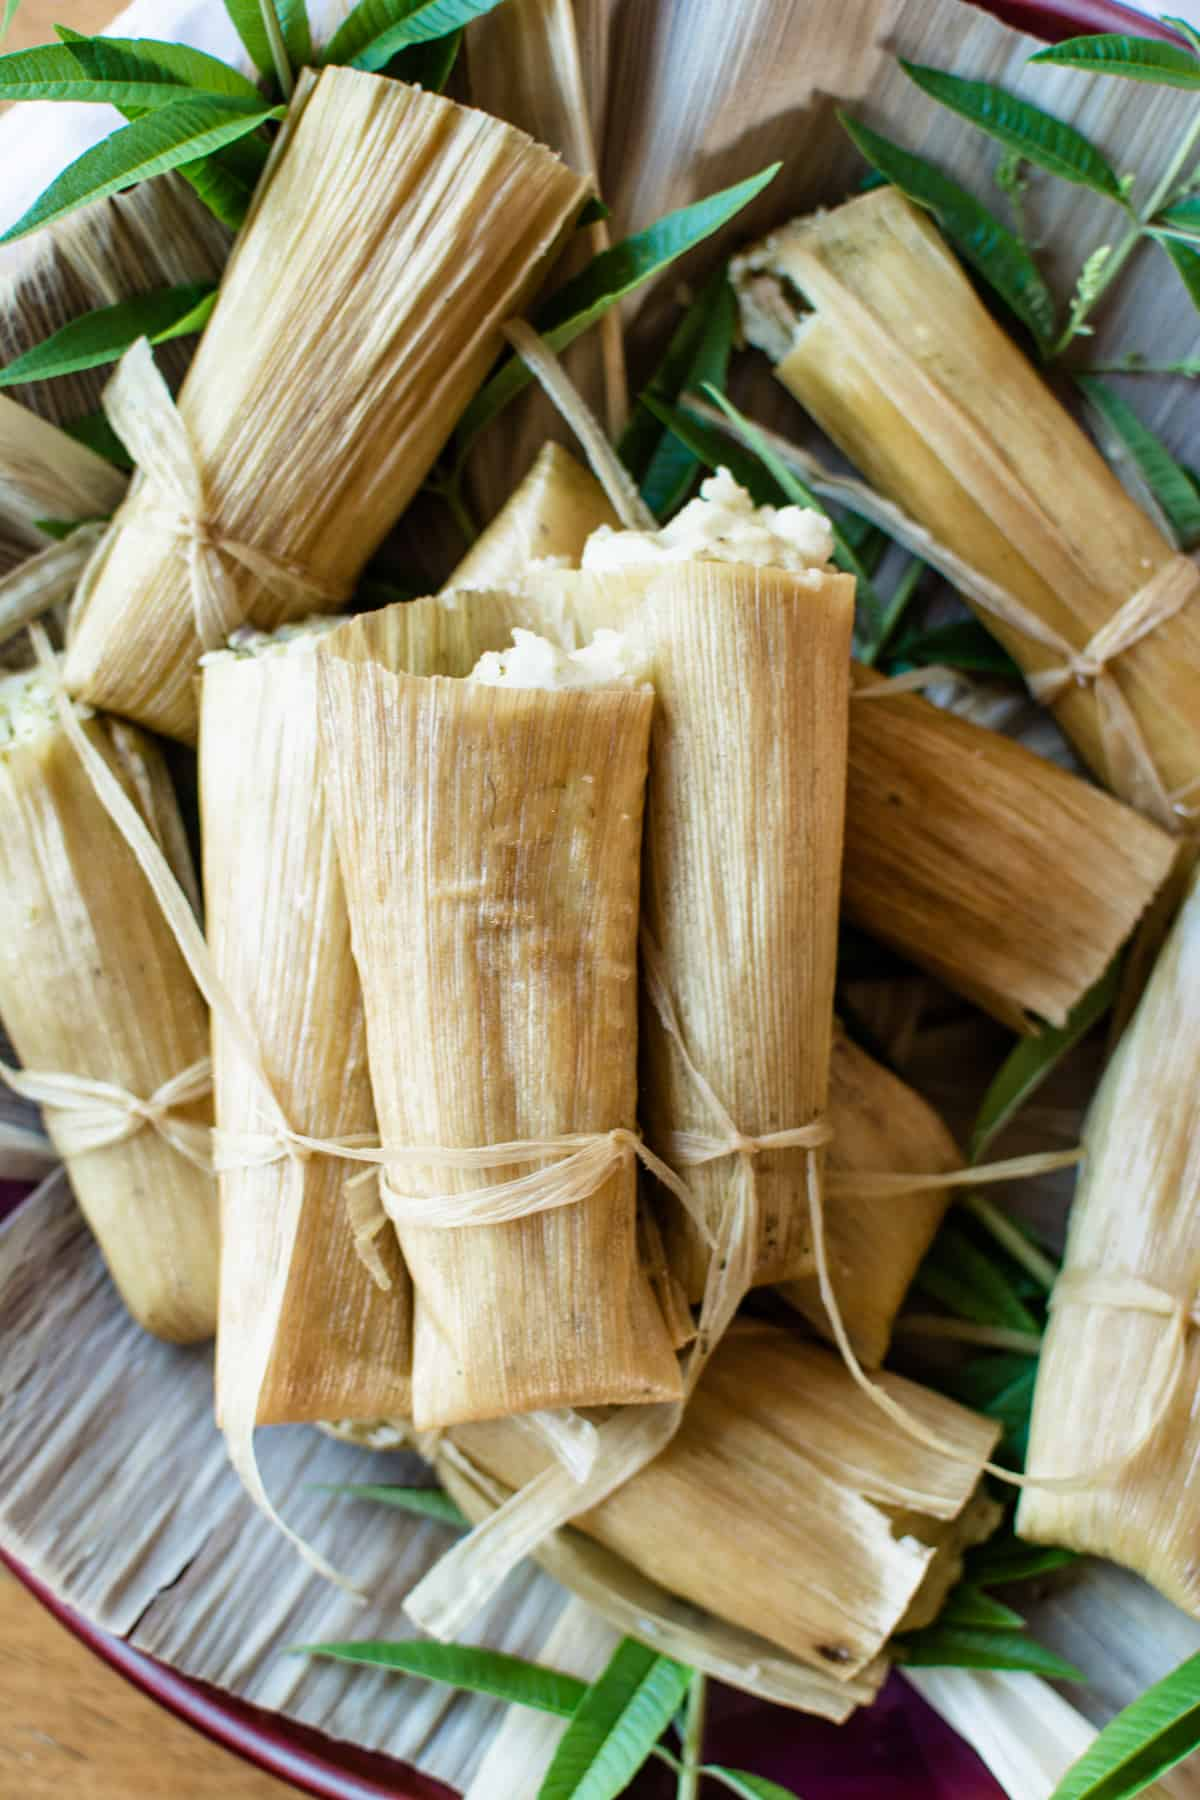 Several pork tamales wrapped in corn husks and tied with corn husk strings sitting on a platter covered in corn husks and green leaves.